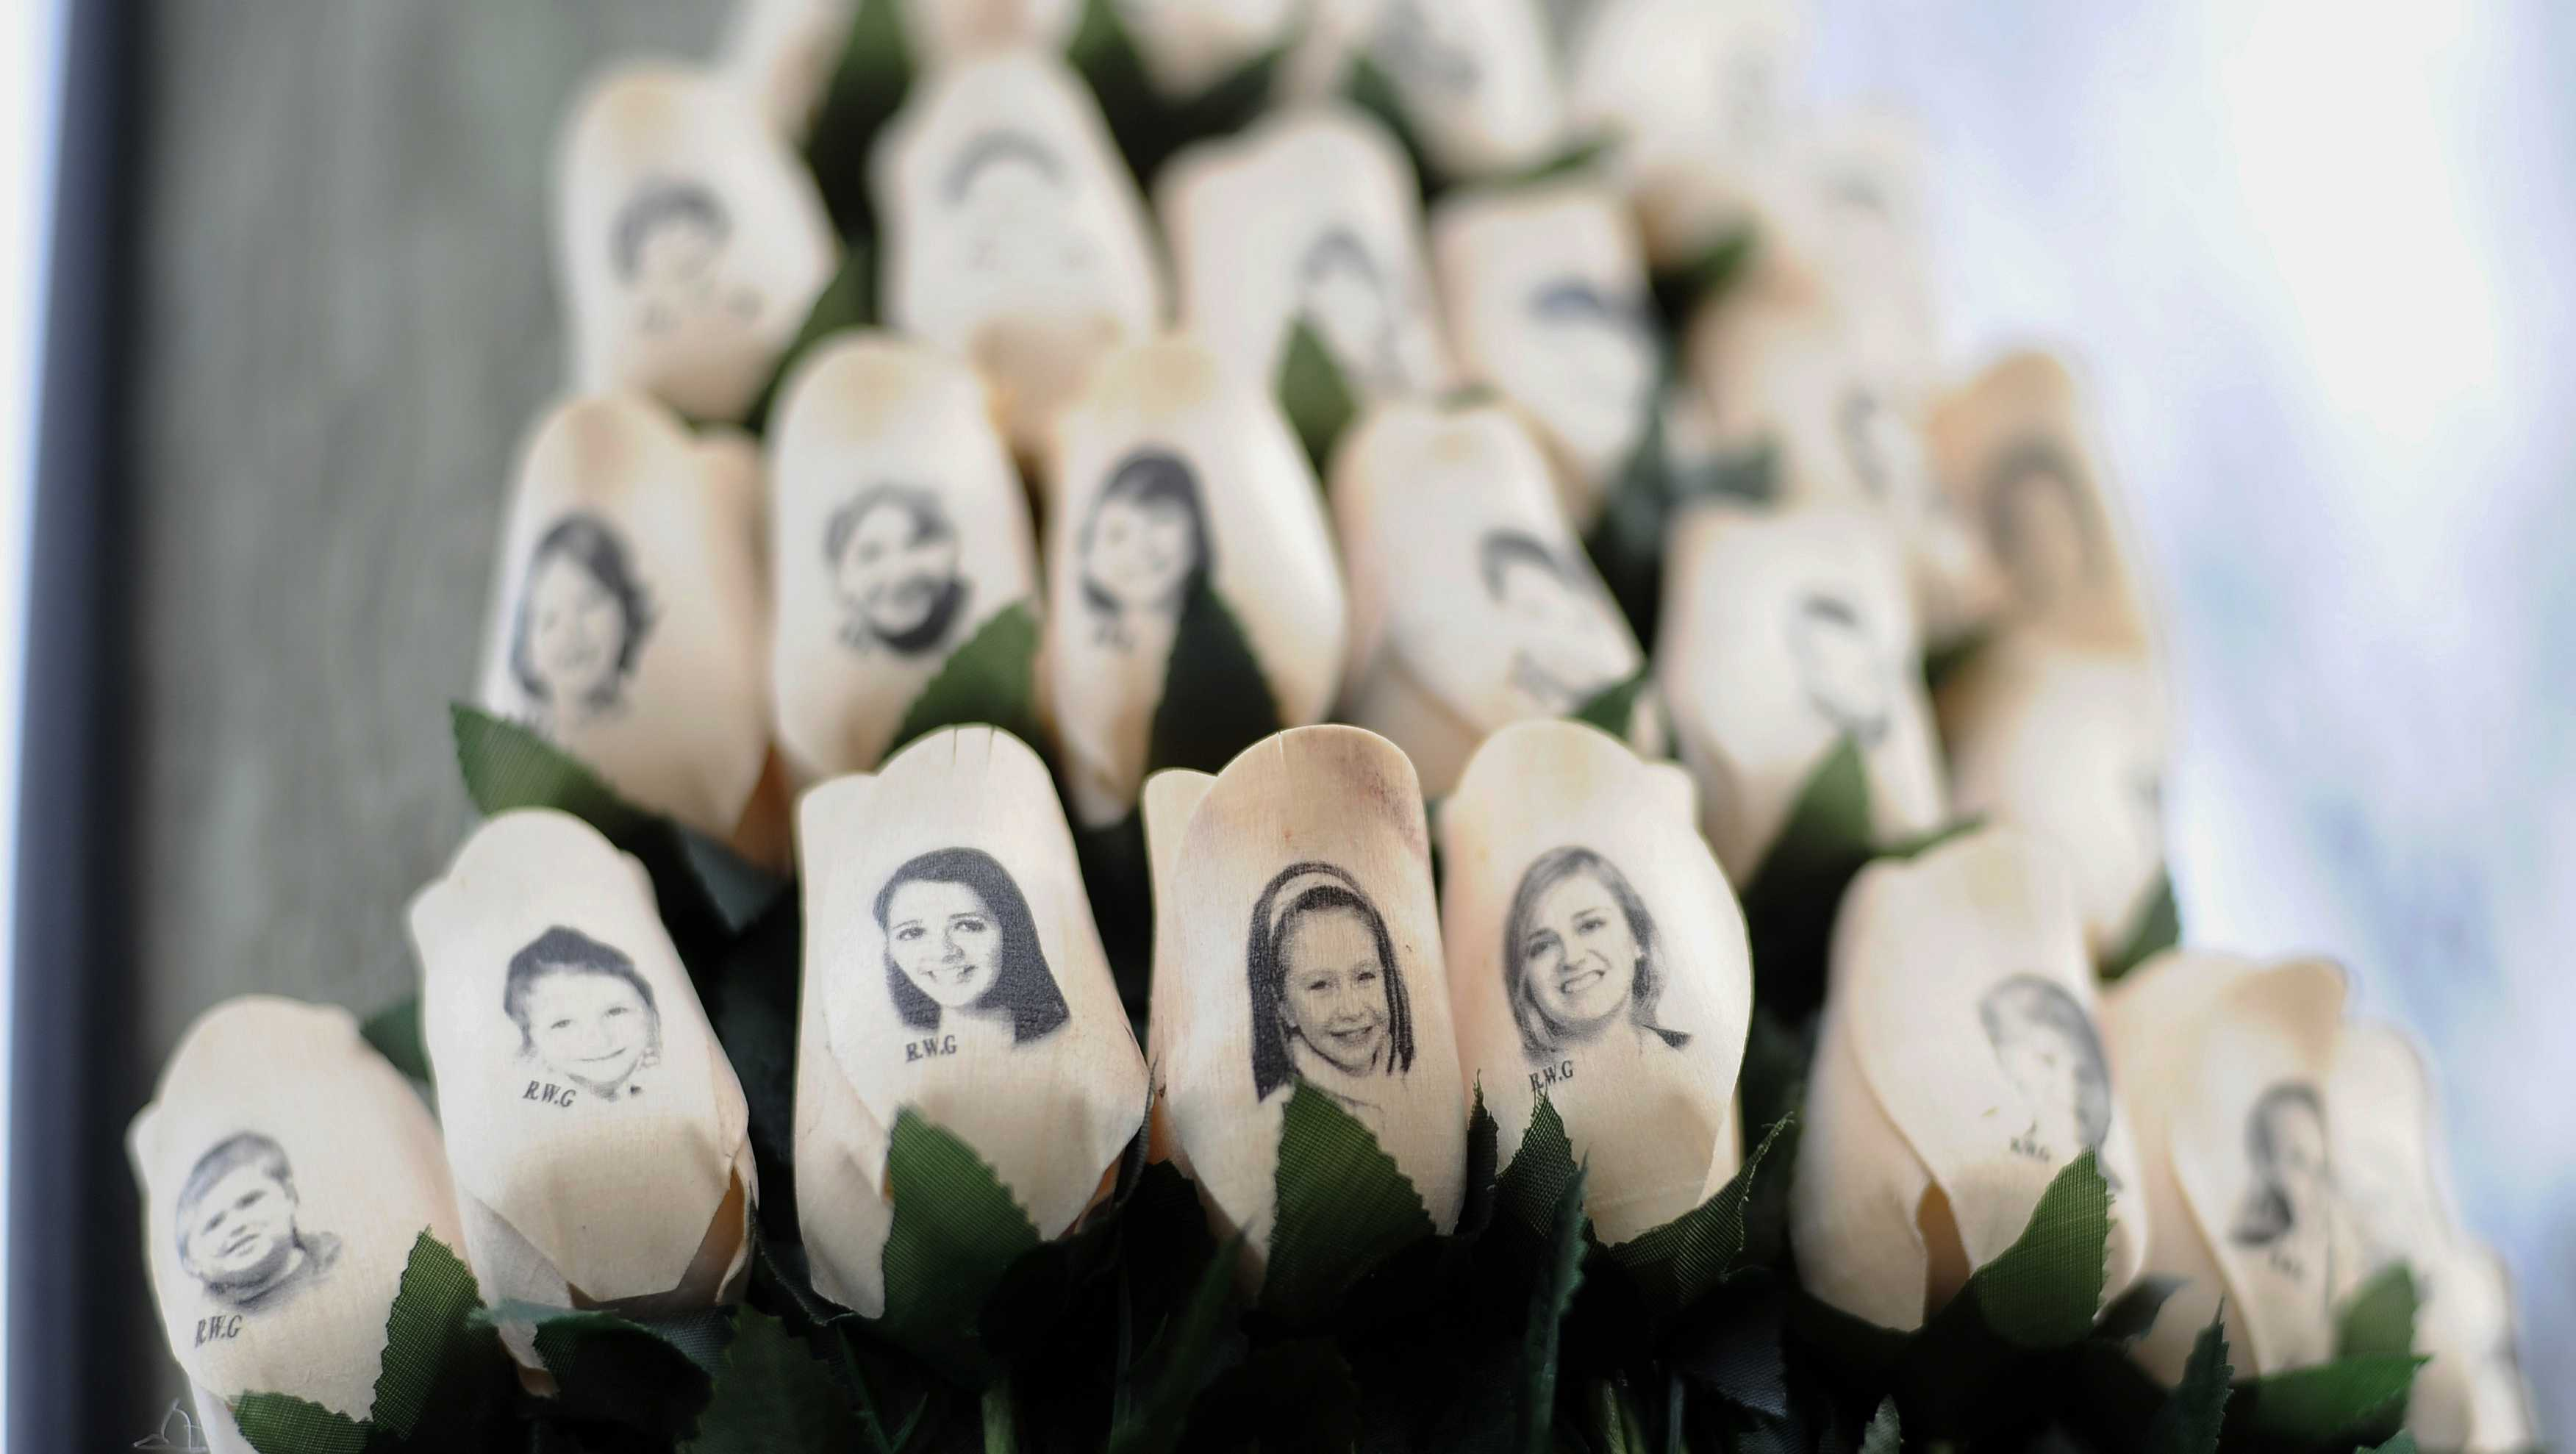 In this Jan. 14, 2013, file photo, white roses with the faces of victims of the Sandy Hook Elementary School shooting are attached to a telephone pole near the school in Newtown, Conn. (AP Photo/Jessica Hill, File)